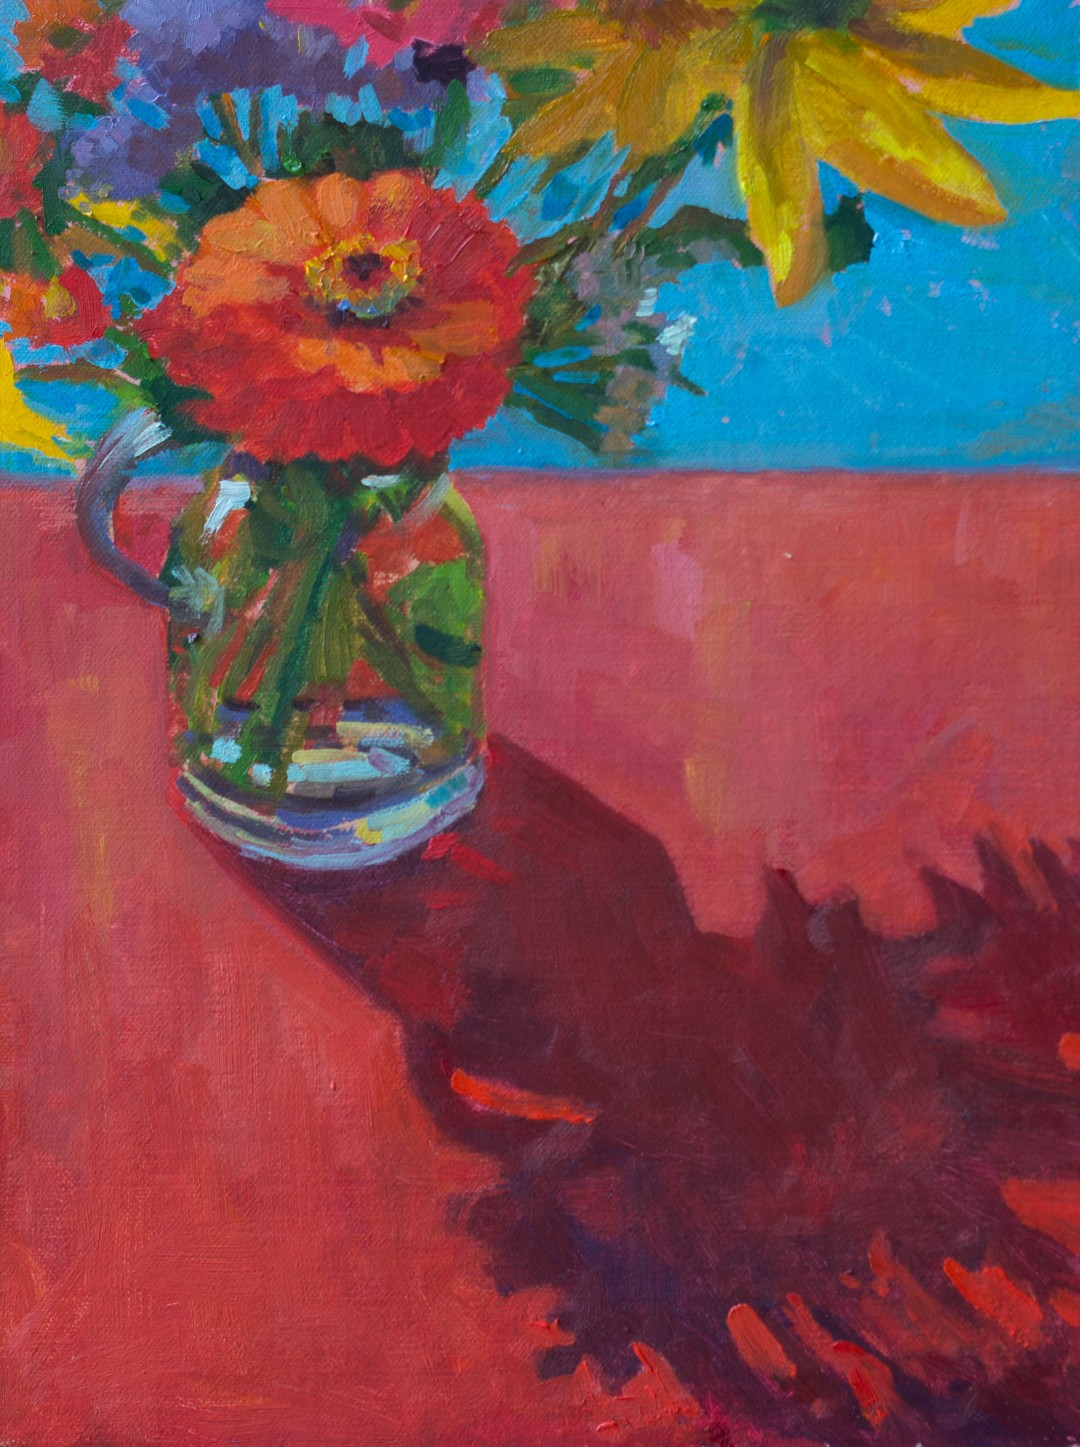 Flowers on Red with Pool